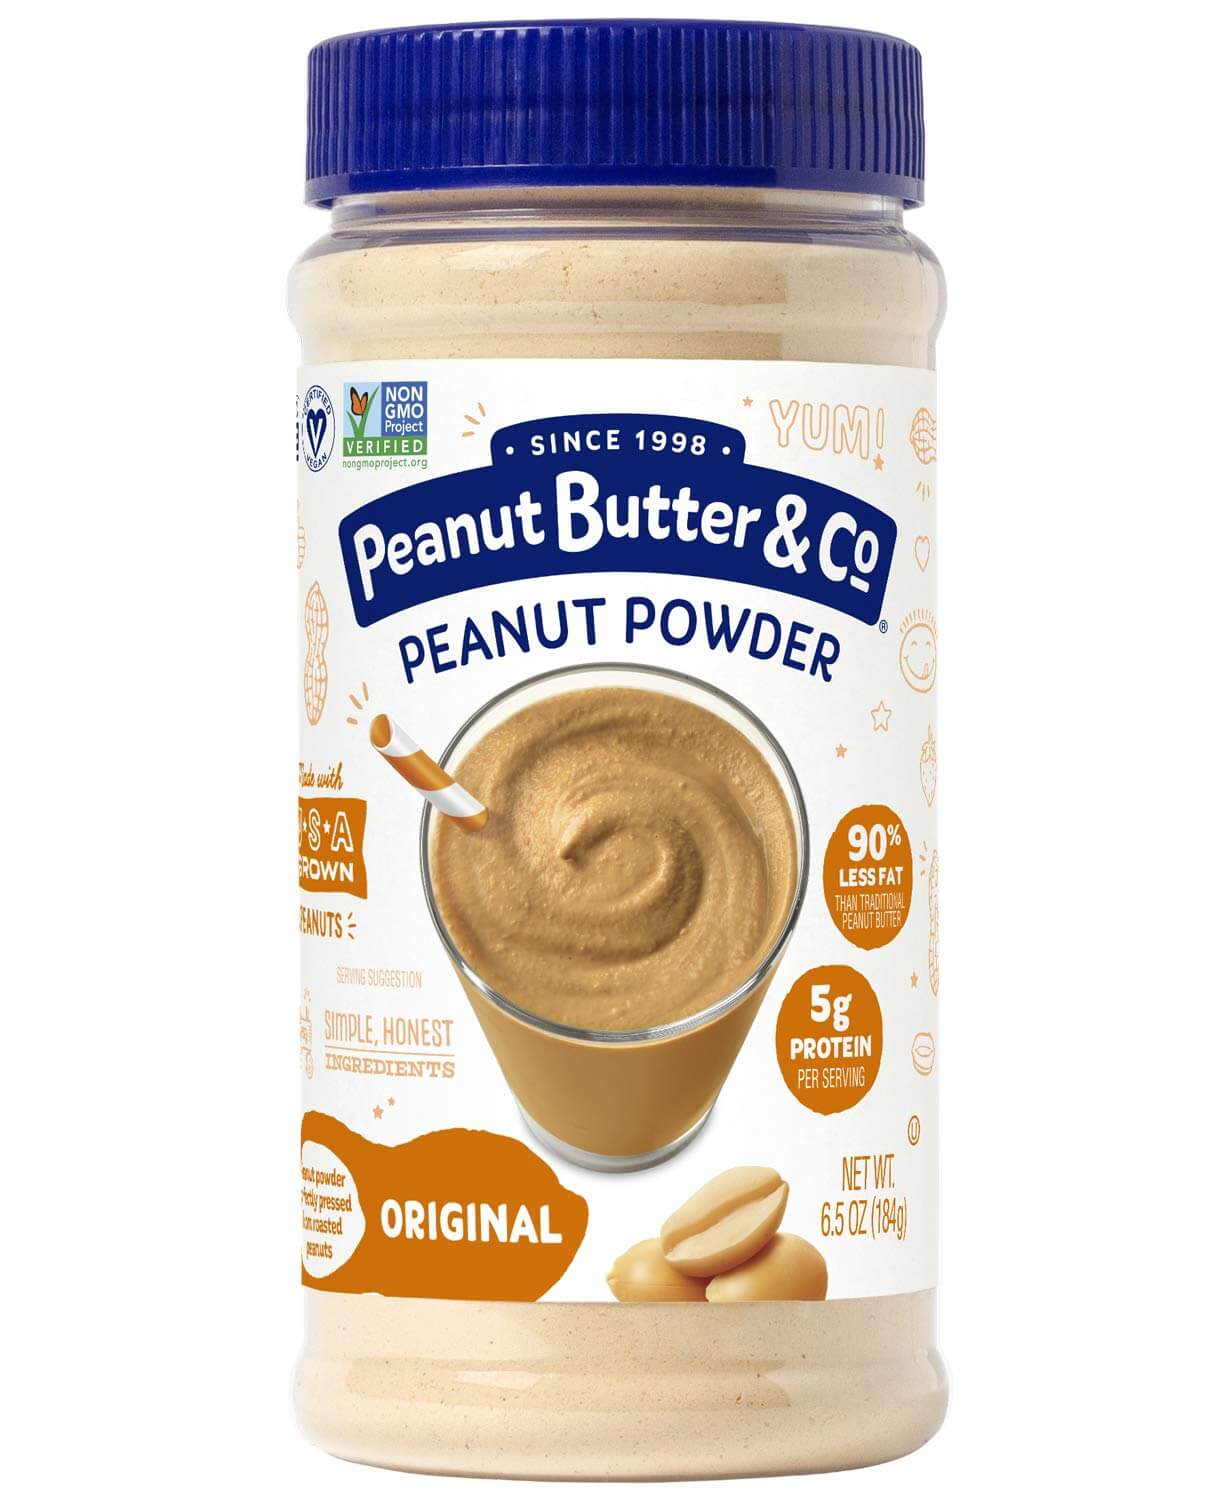 Peanut Butter & Co. Original Peanut Powder